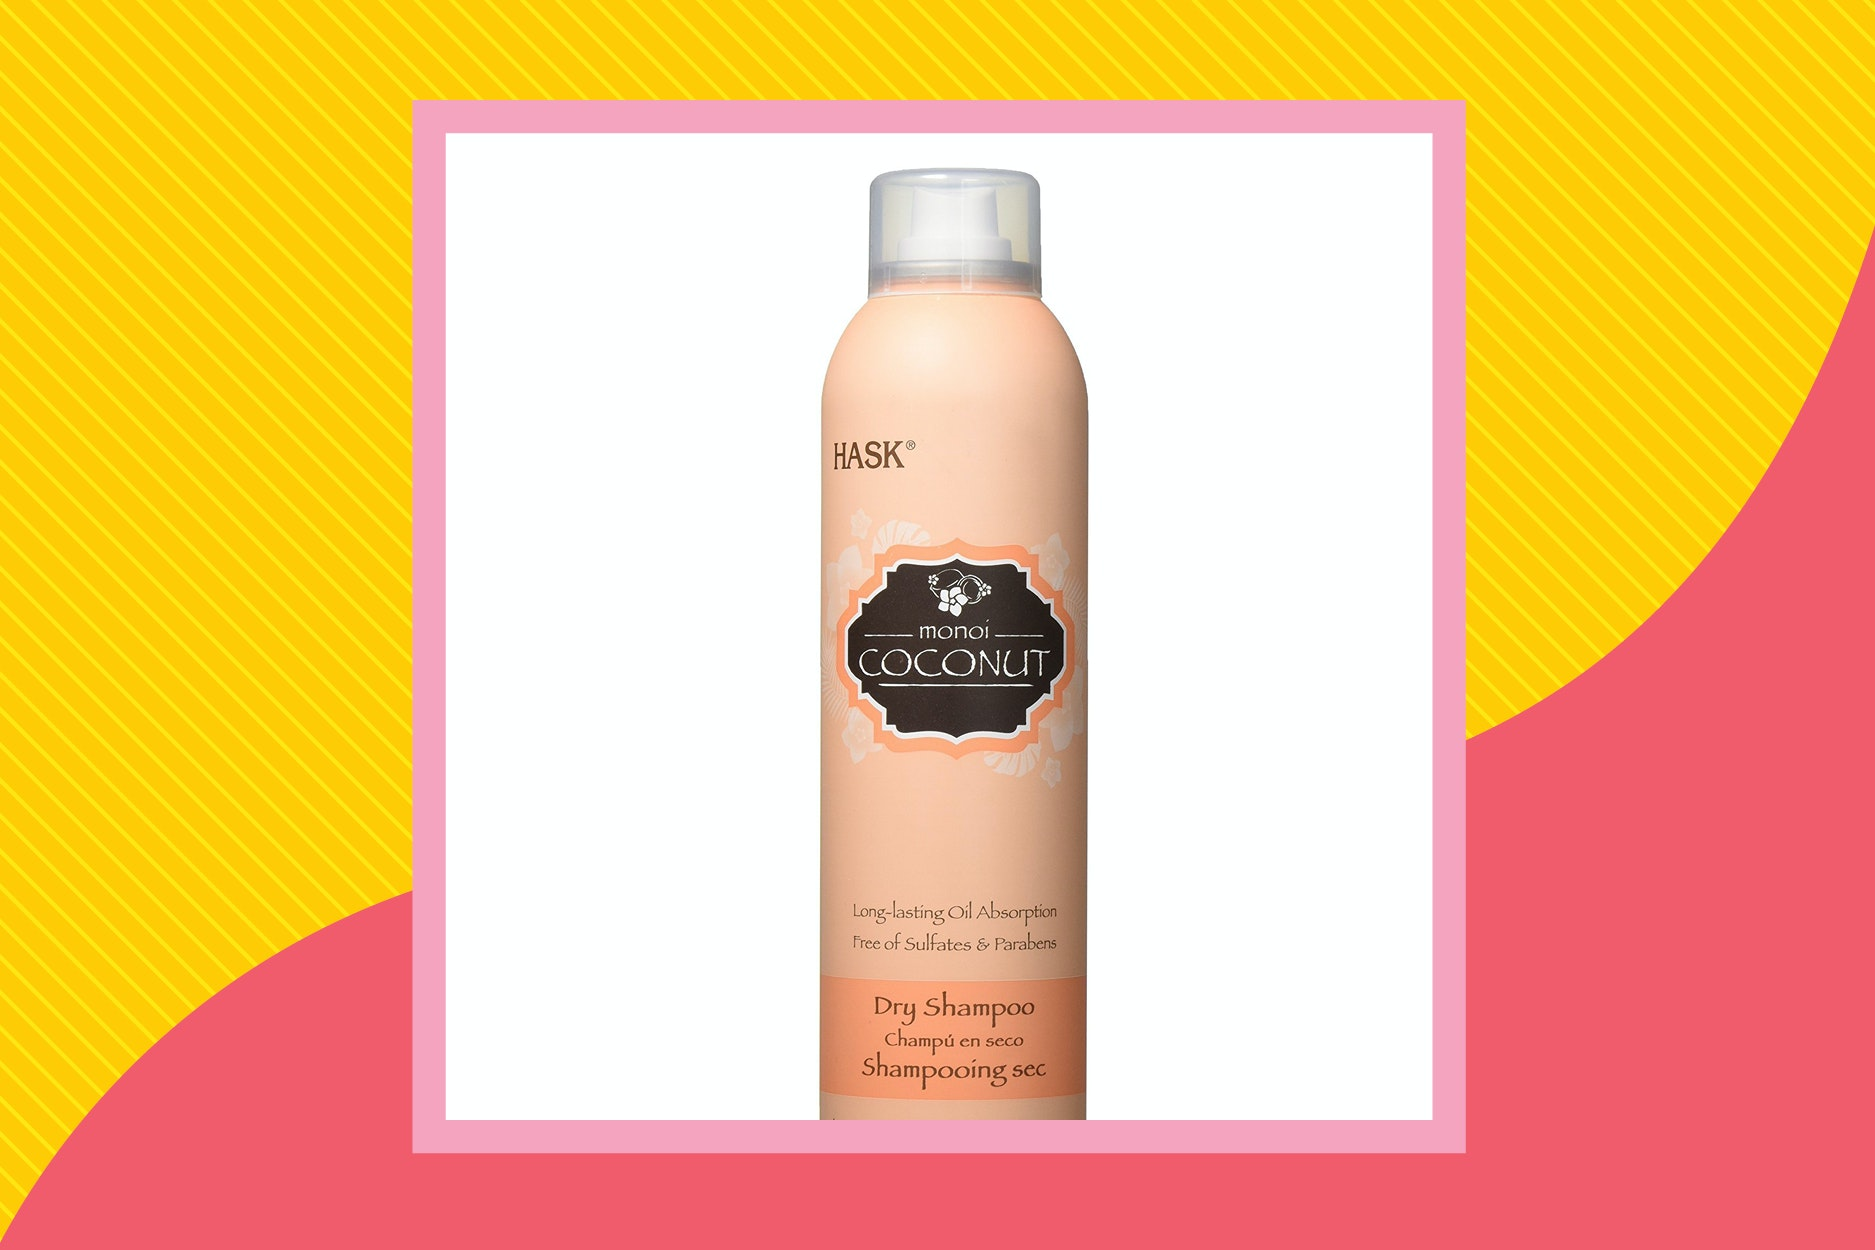 Hask Coconut dry shampoo has a subtle scent that's not too overpowering.